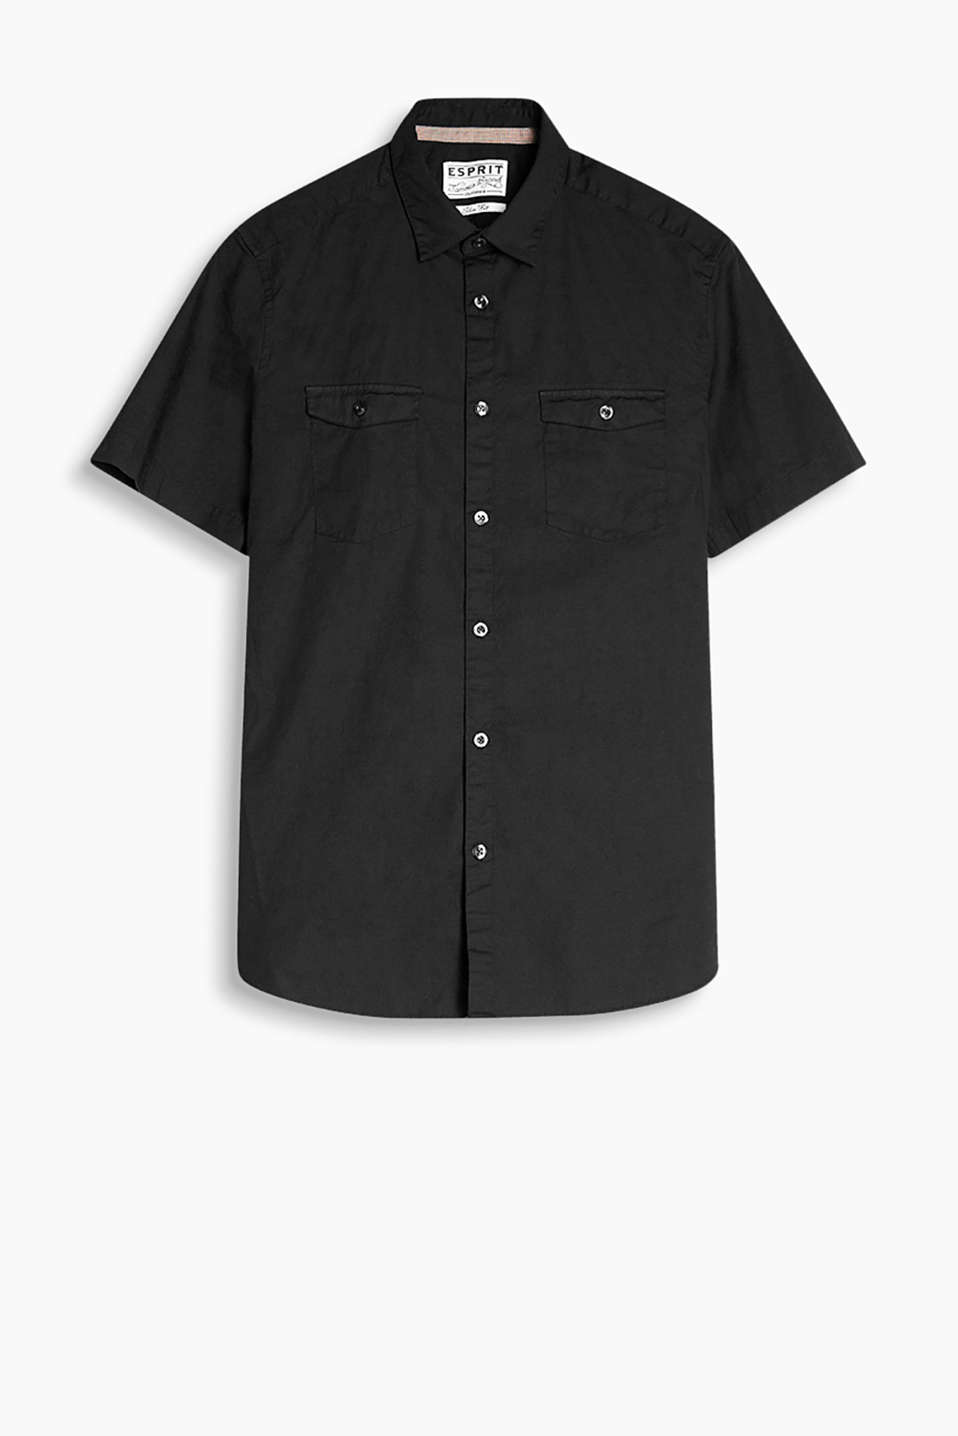 Shirt with breast pockets and short sleeves made of smooth cotton fabric with a high percentage of stretch